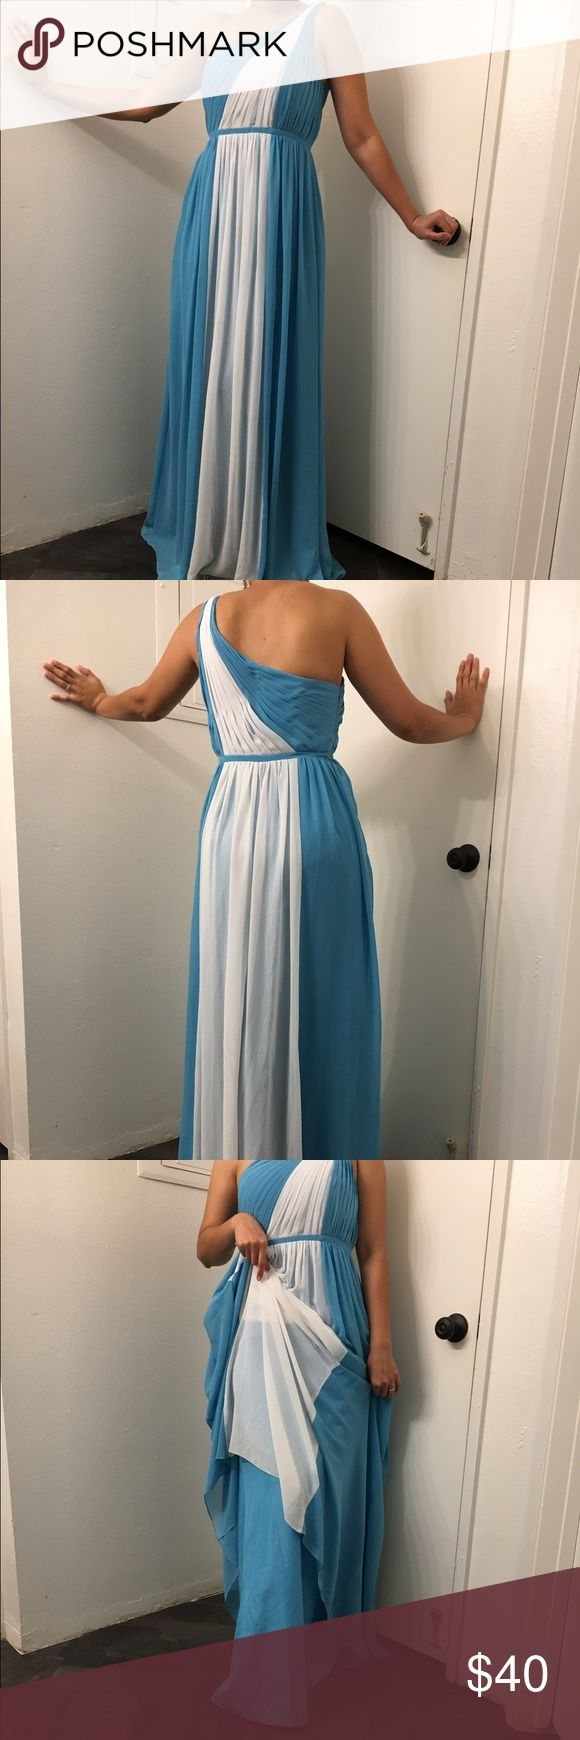 """Lights blue and white evening gown Light blue and white evening gown. Features one shoulder and draped skirt part of the dress. The top is rescued or pleated. Has a white accent in throughout the middle made of a chiffon material. Length approximately 58-60"""". Fits a size 34B/C comfortably in the chest area size 6. Perfect evening dress for special occasions such  as weddings, prom, date, ect Bari Jay Dresses One Shoulder"""